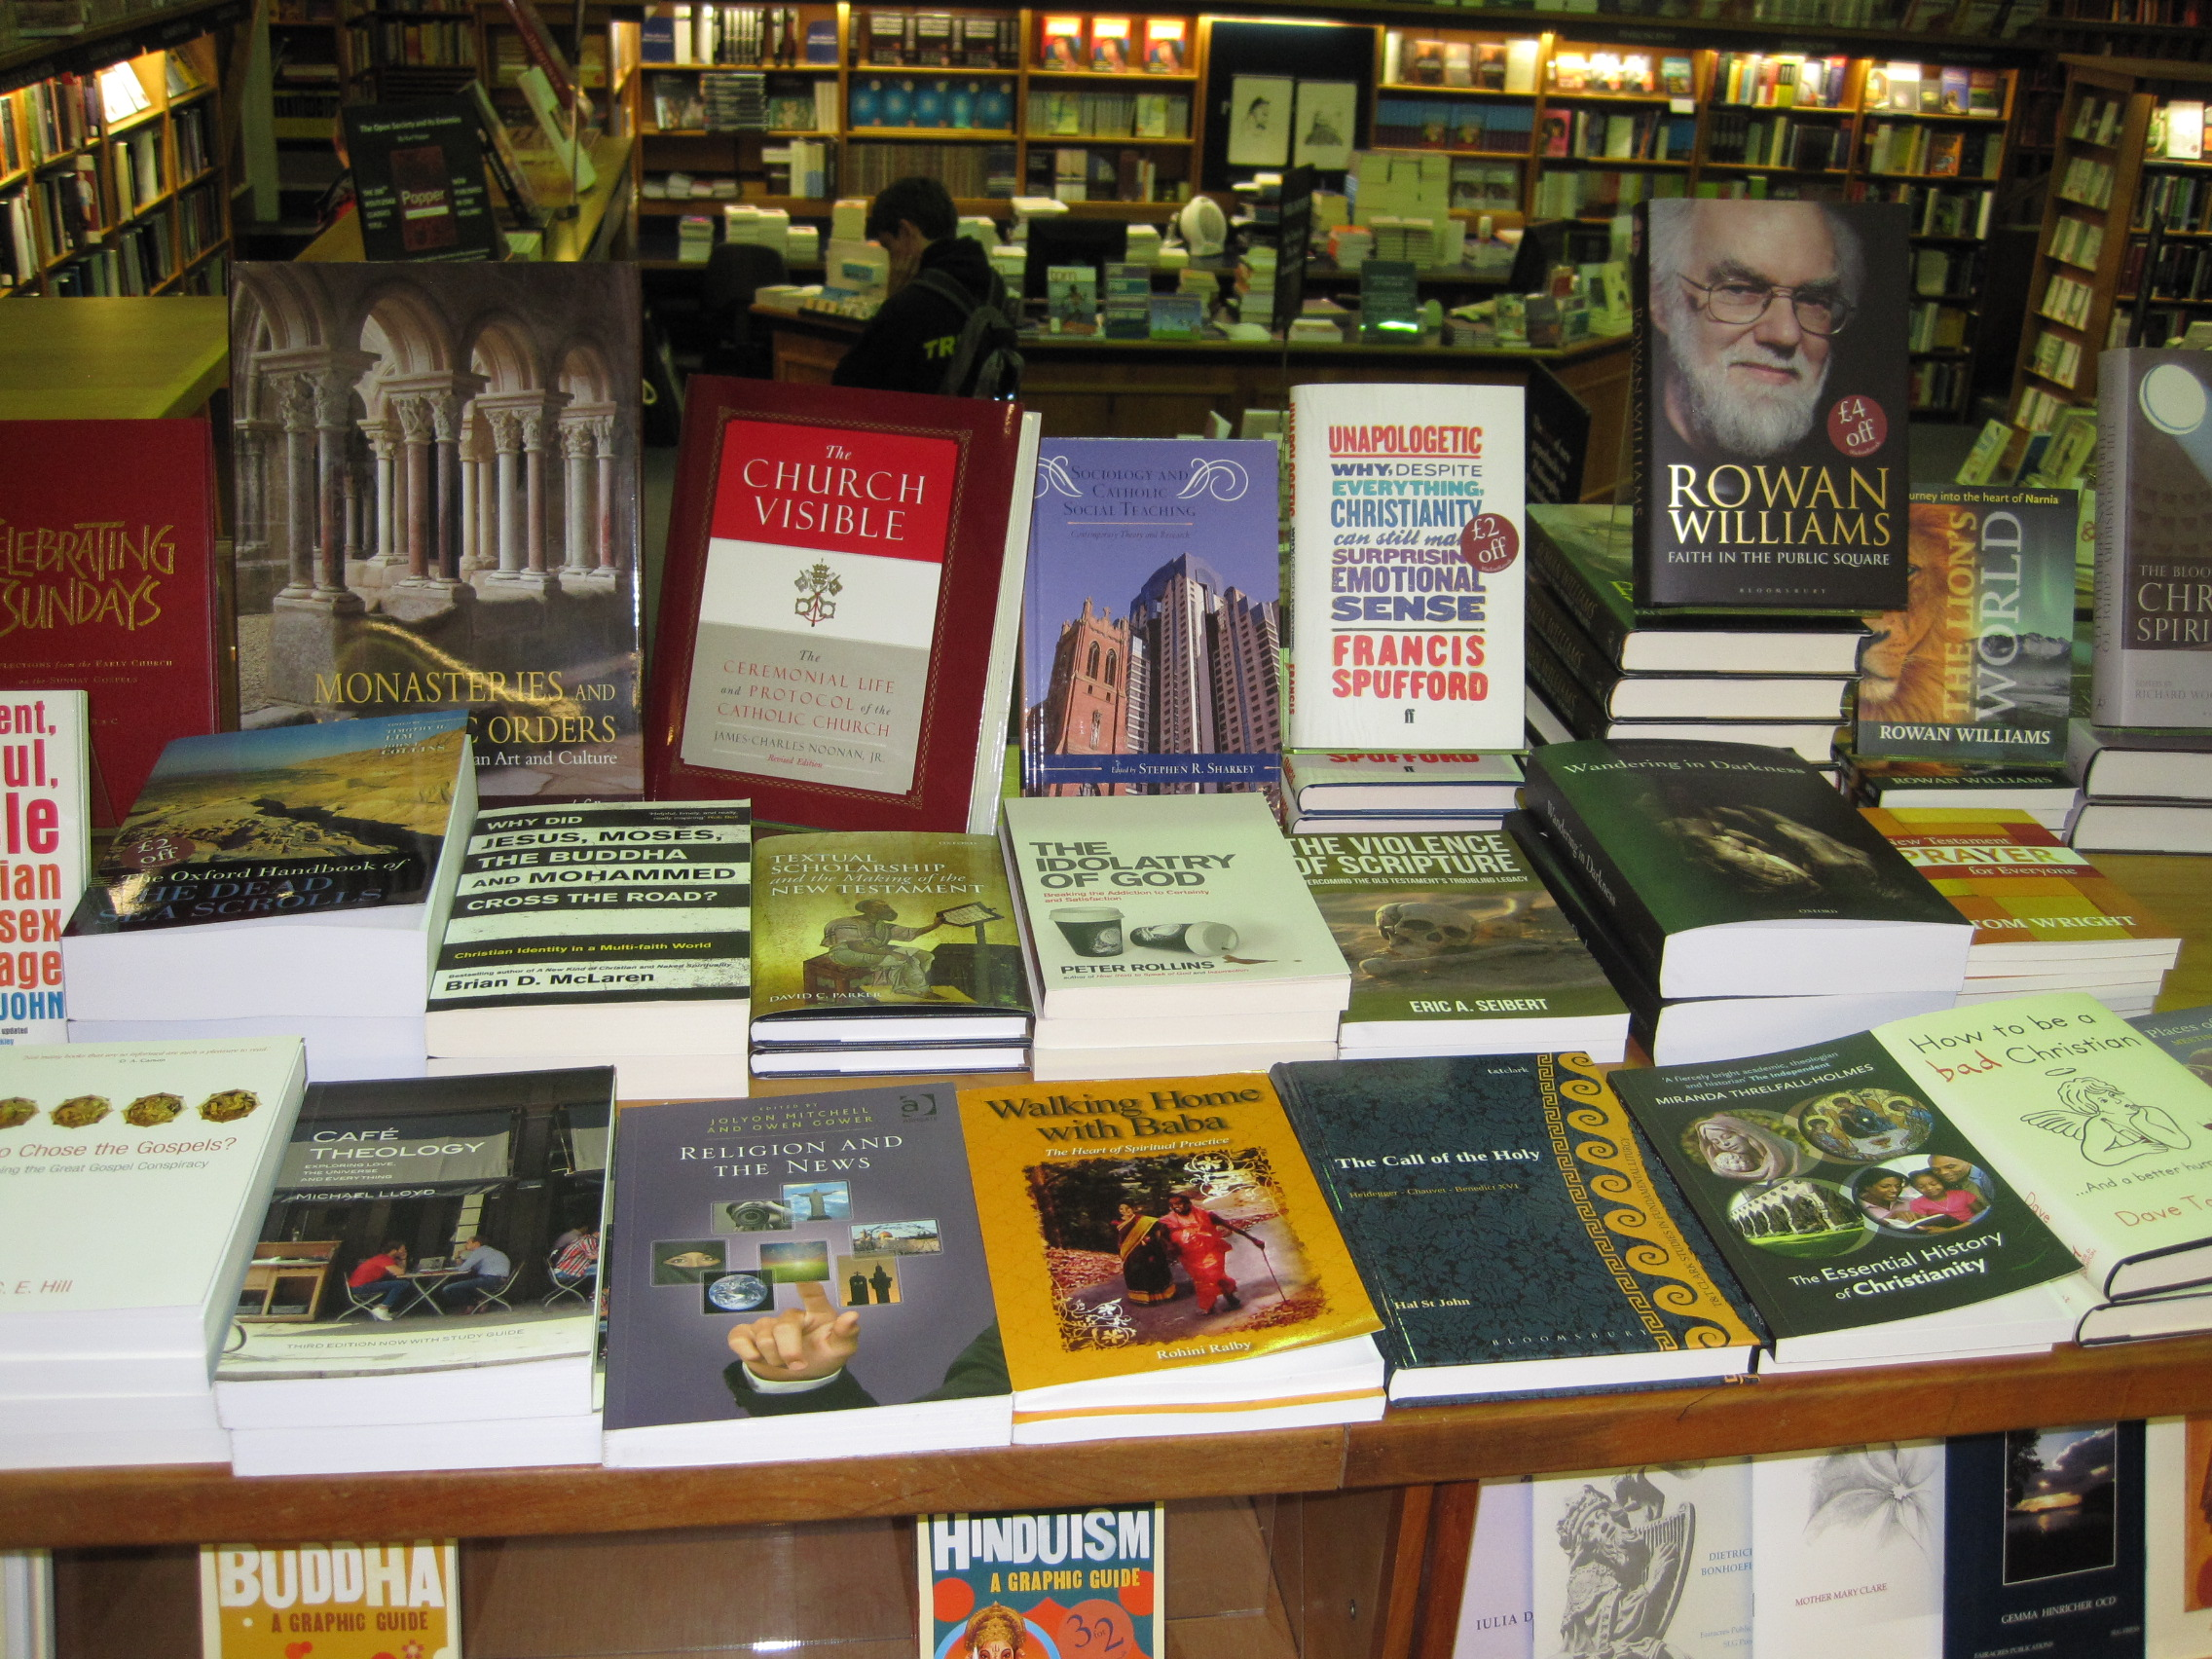 Baba in Blackwell's